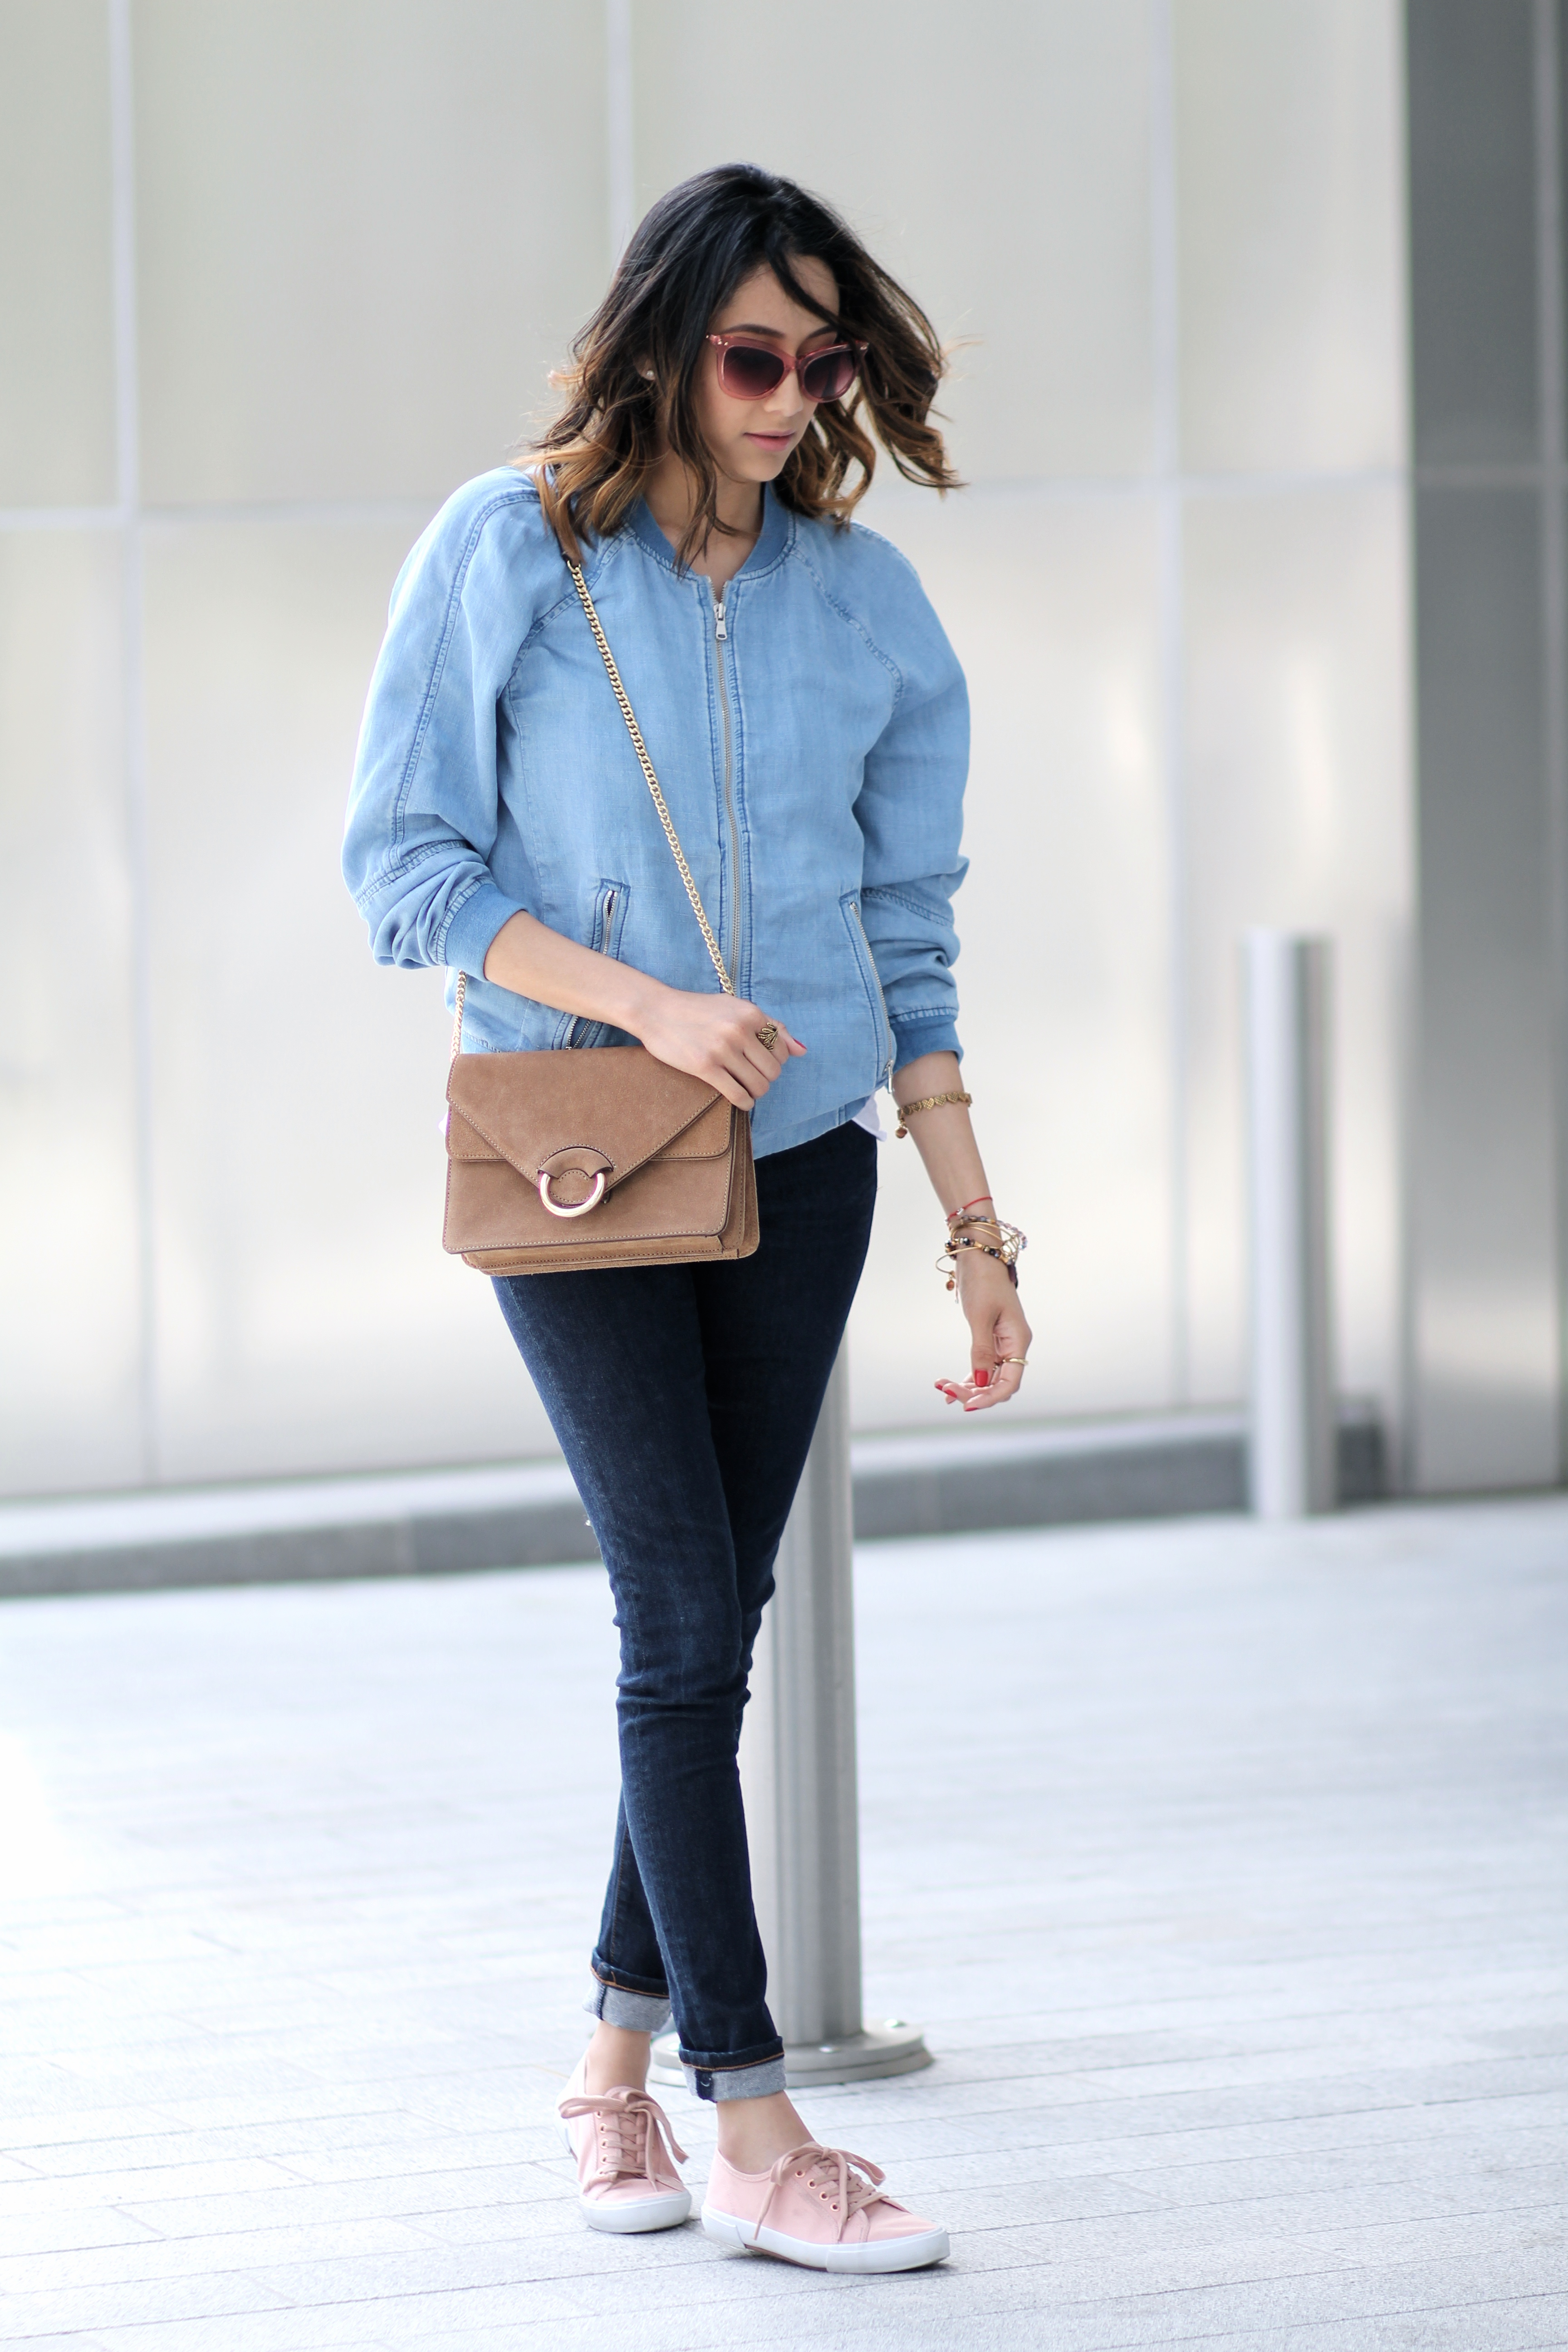 A casual Friday look wearing a denim bomber jacket